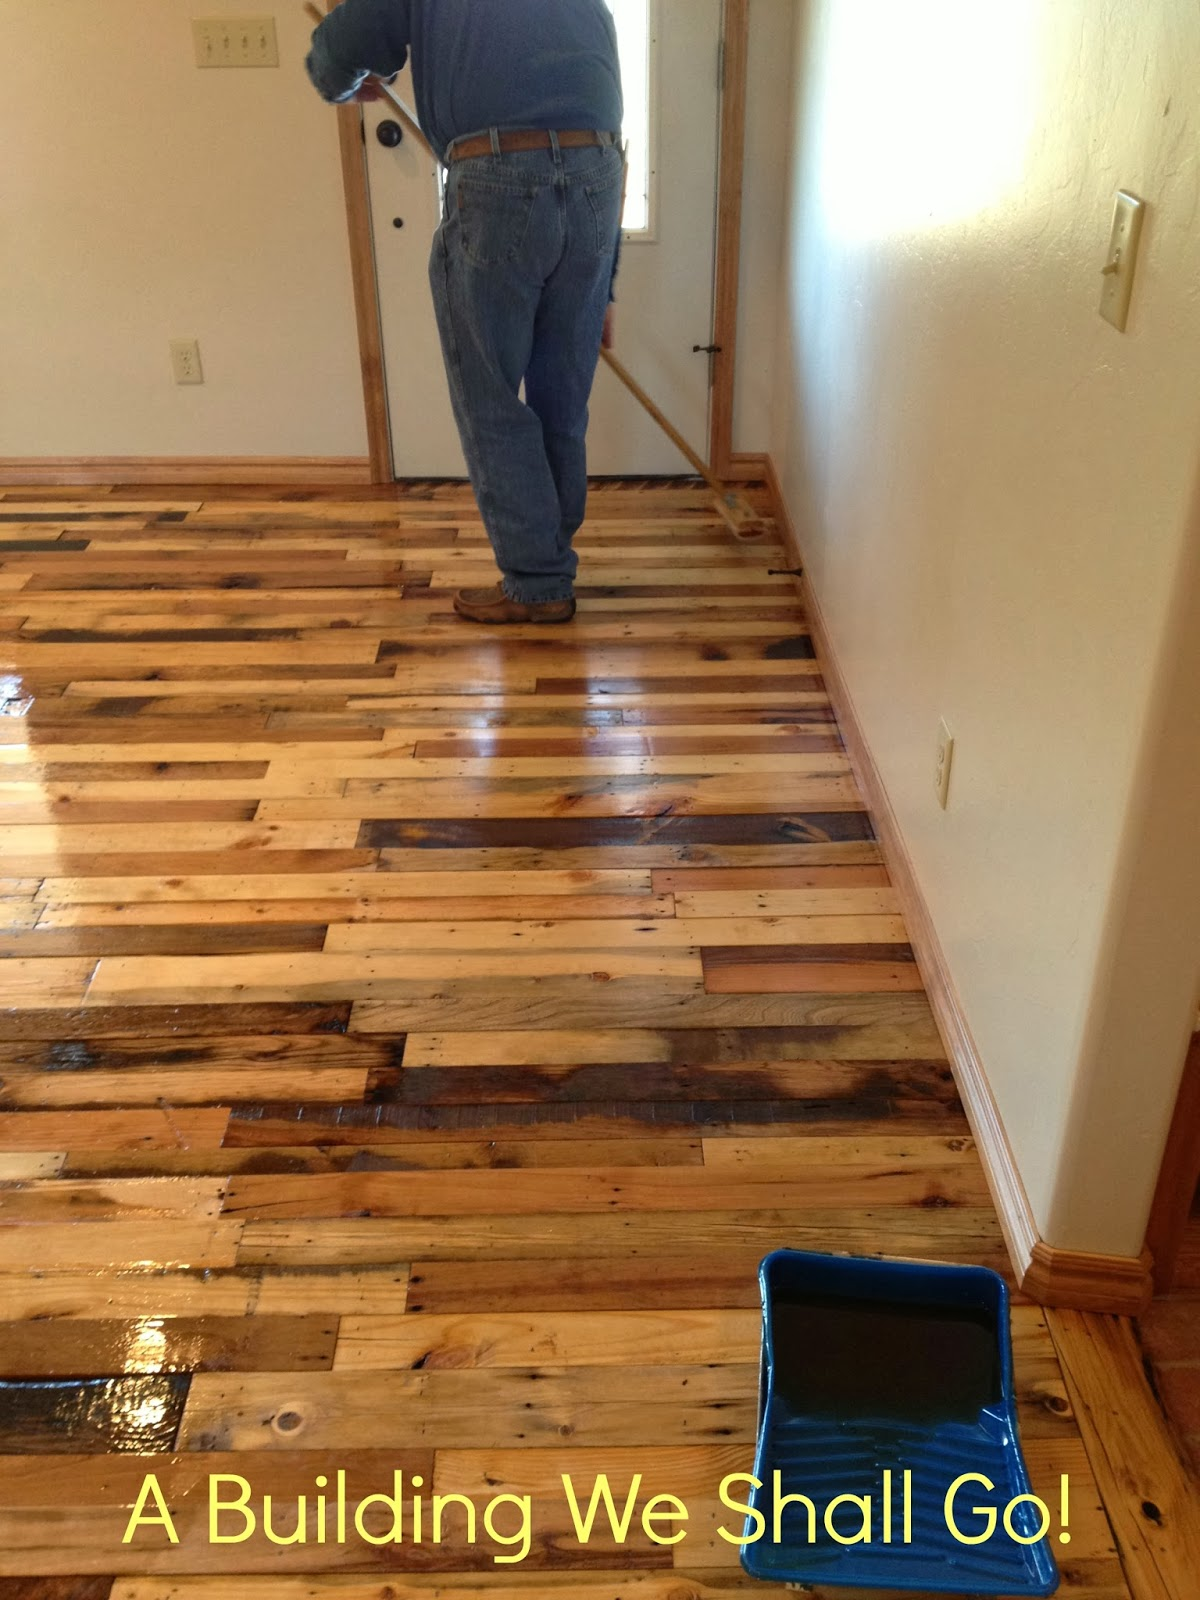 Diy Hardwood Floor engineered hardwood floors partially installed hardwoods floors floors floors flooring A Building We Shall Go